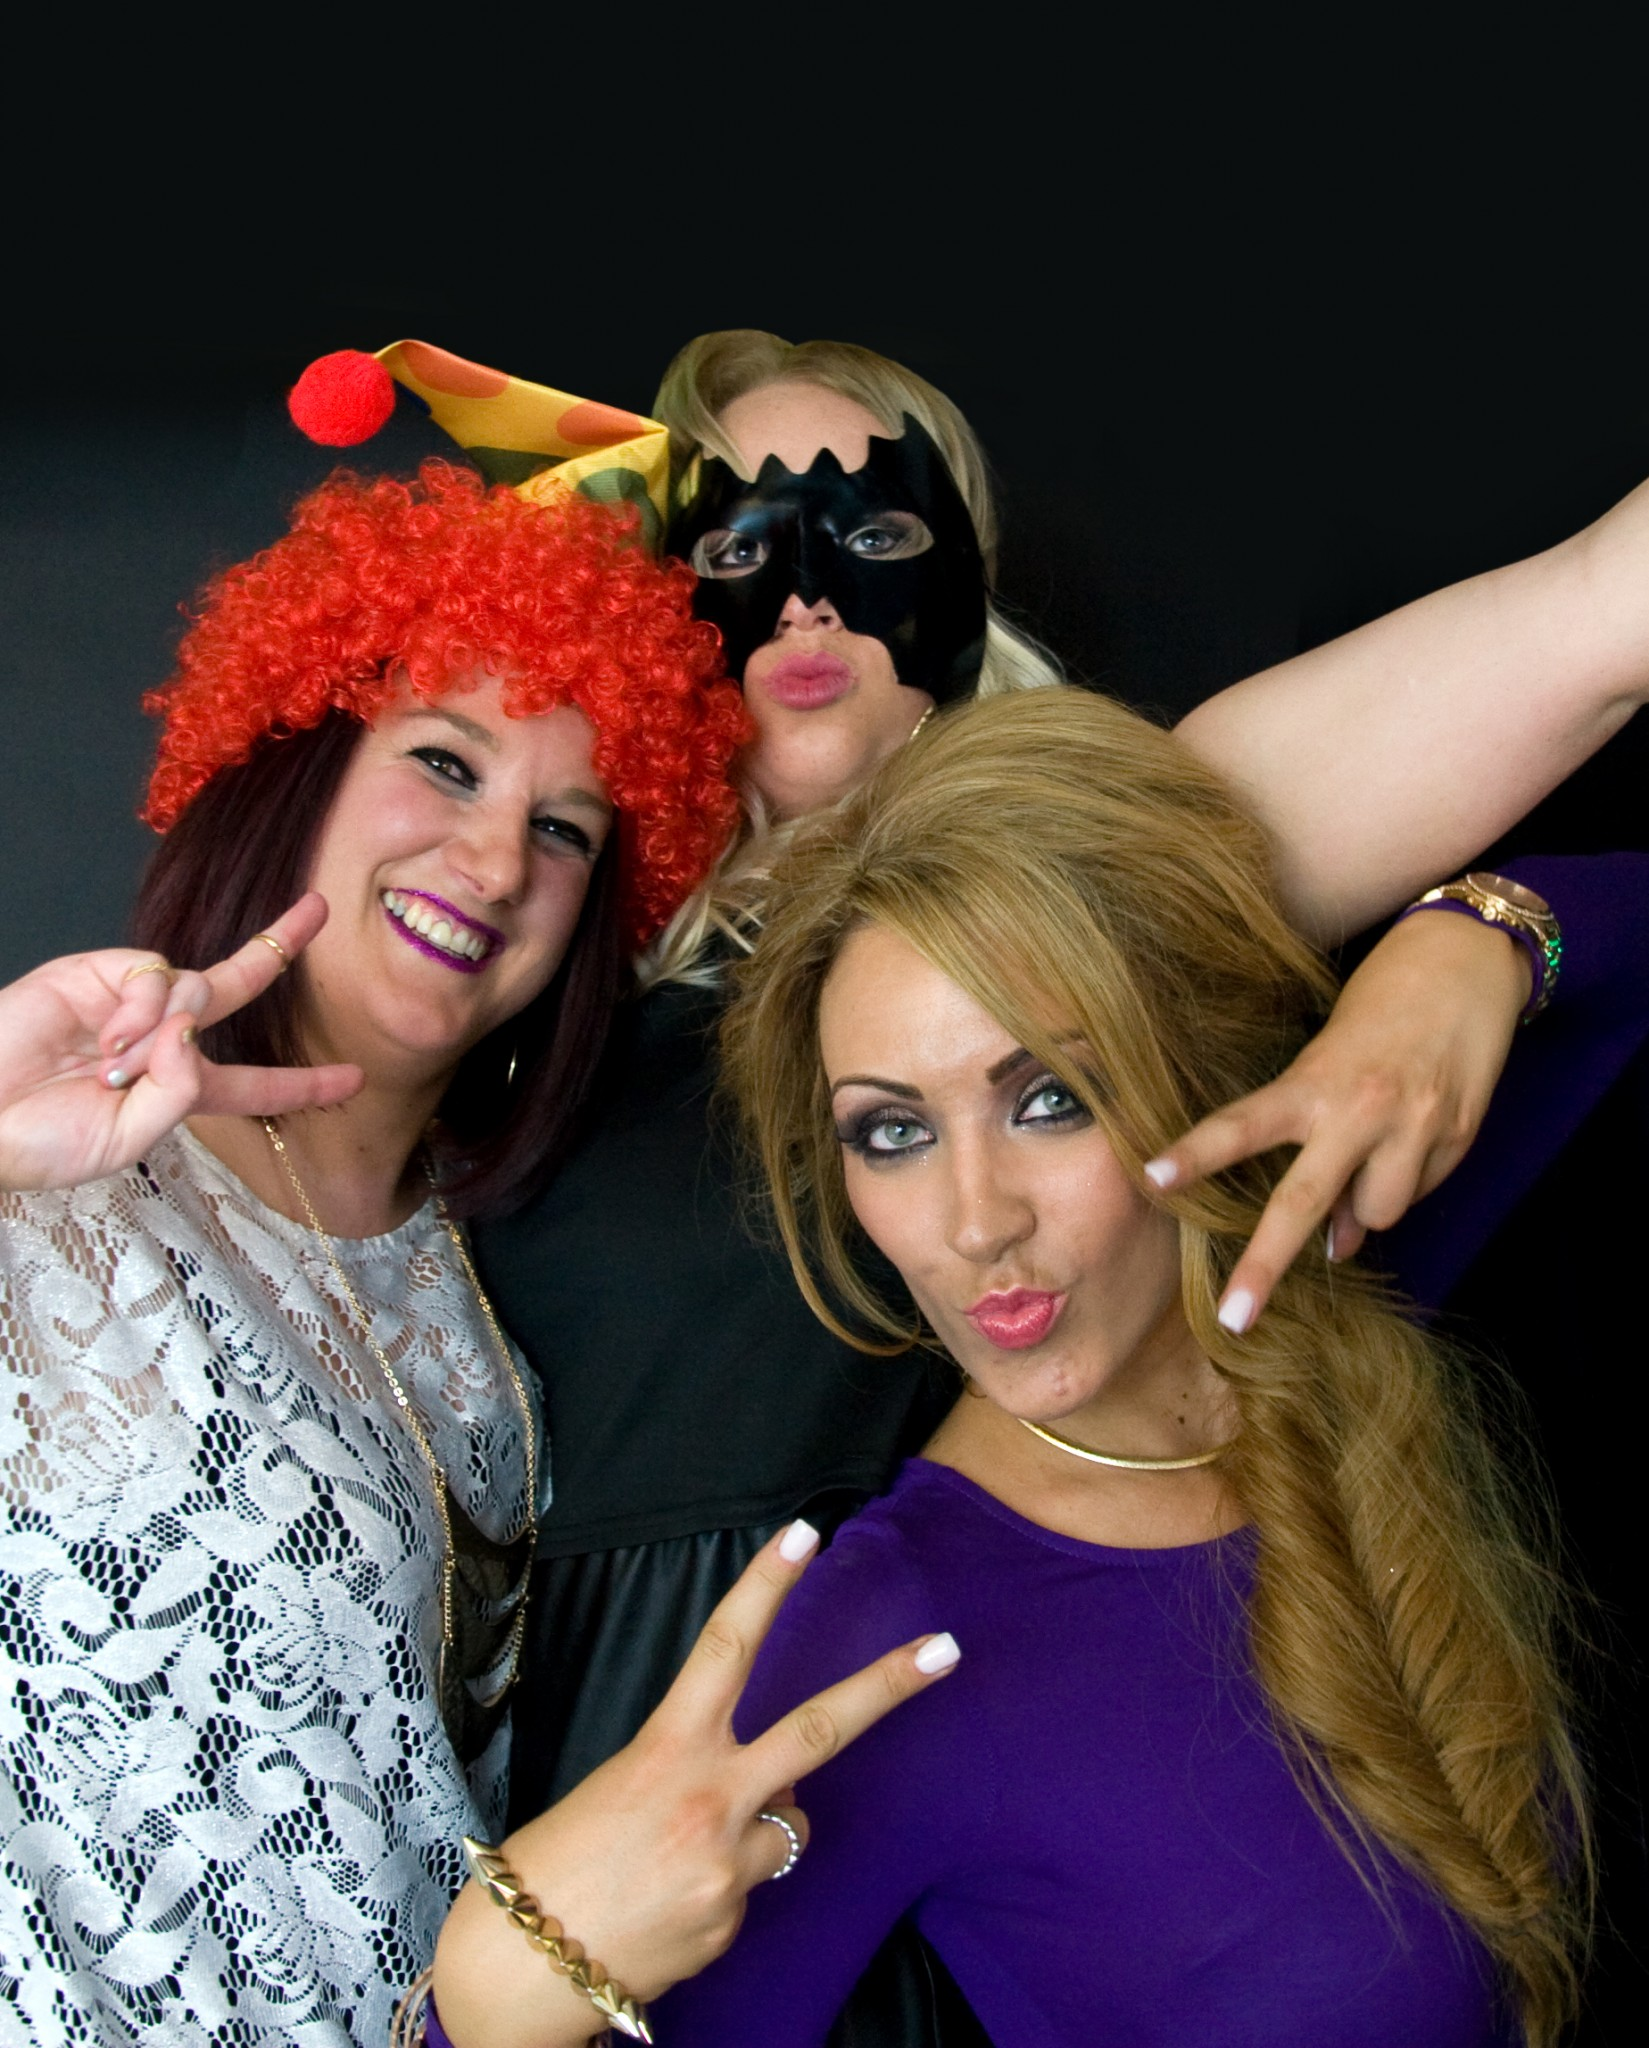 photo-booth-style-photography_9452